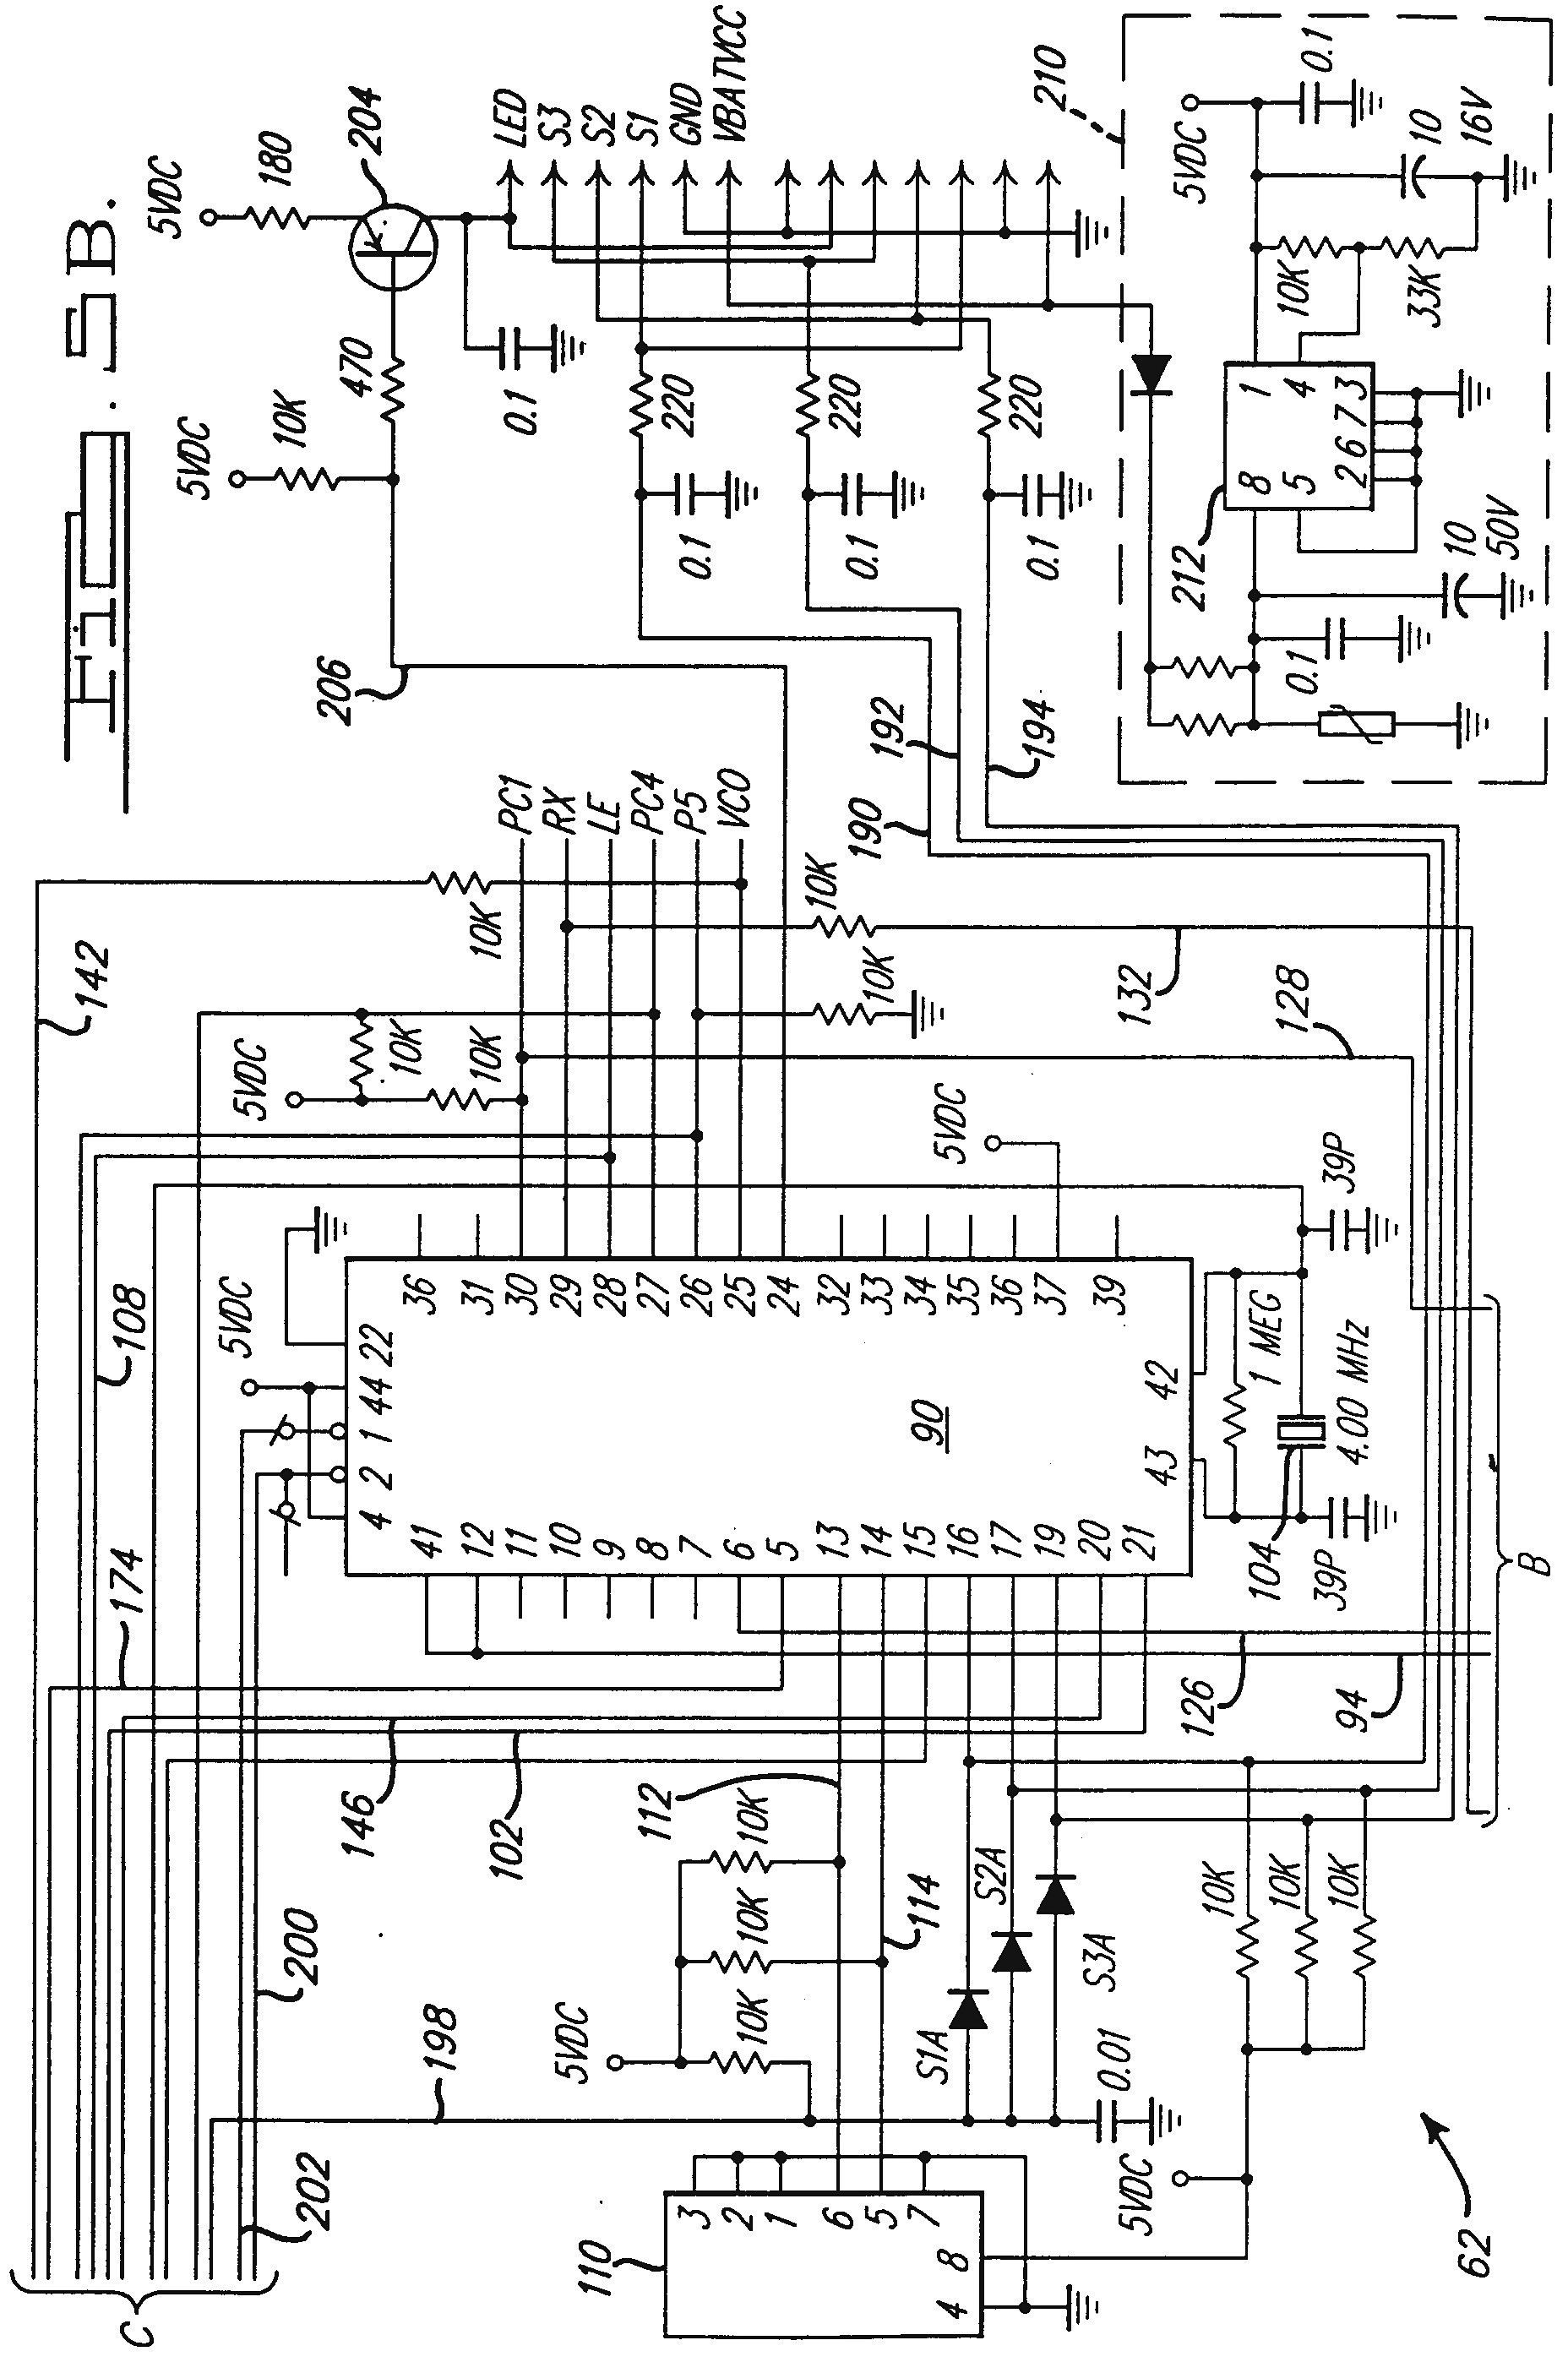 New Wiring Diagram Garage Door Opener Sensors #diagram #